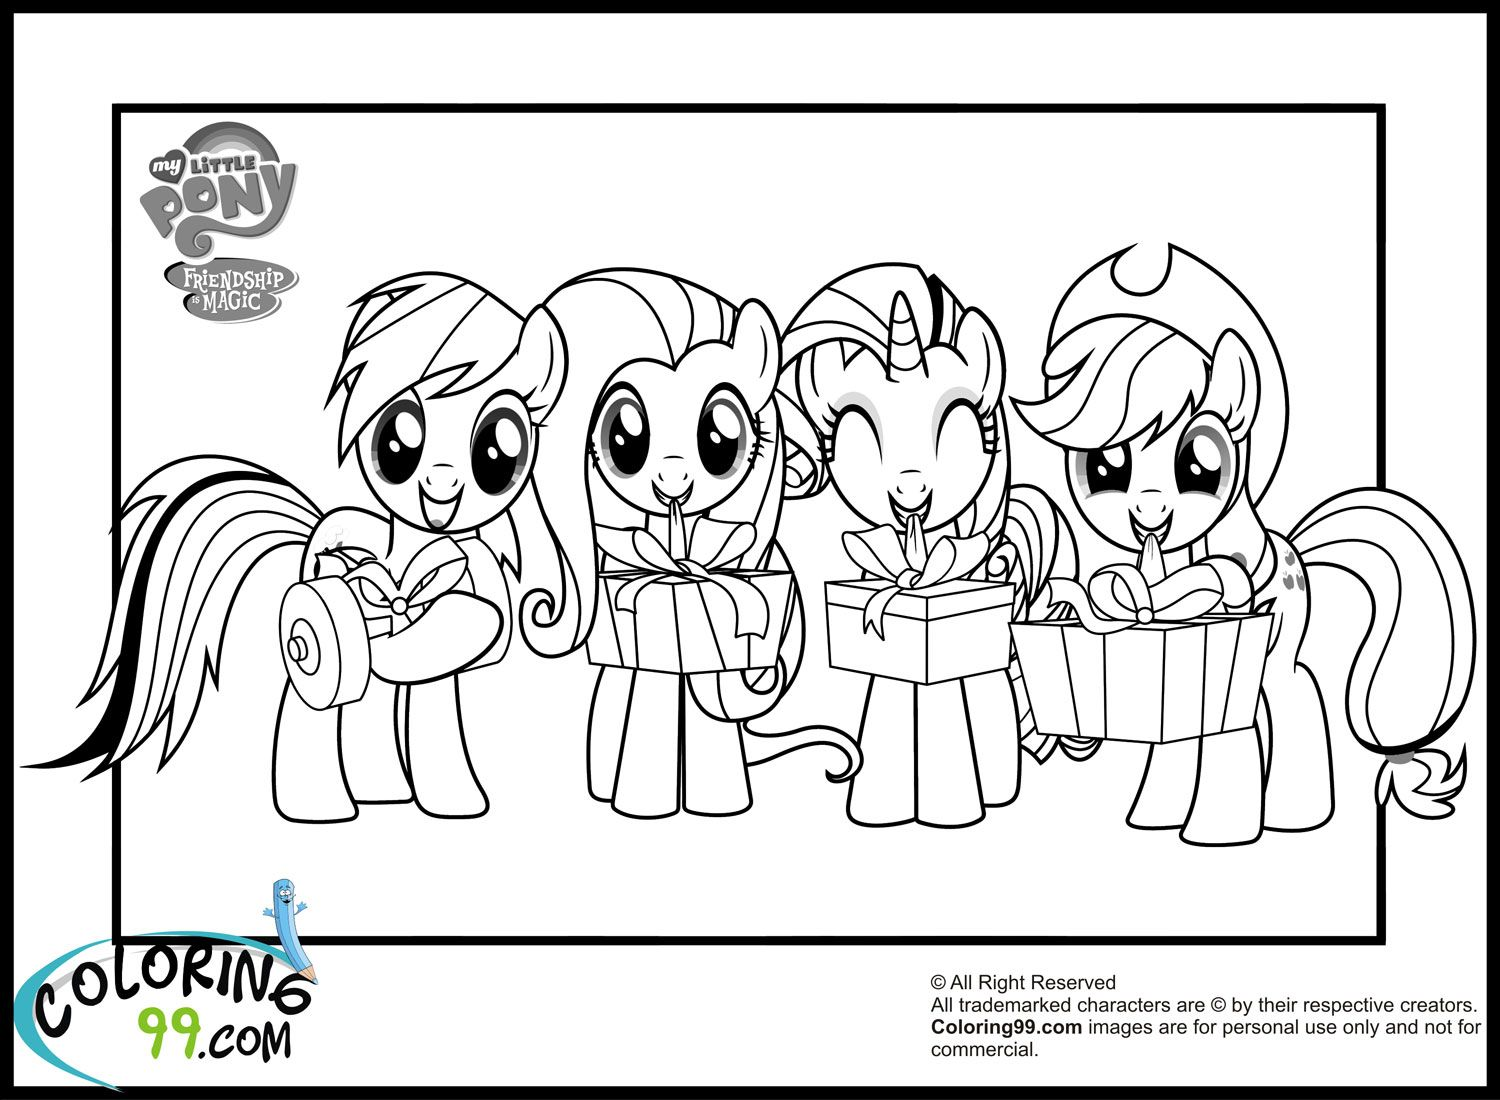 Young my little pony coloring pages - Rainbow Dash Fluttershy Twilight And Apple Jack My Little Pony Coloring Page